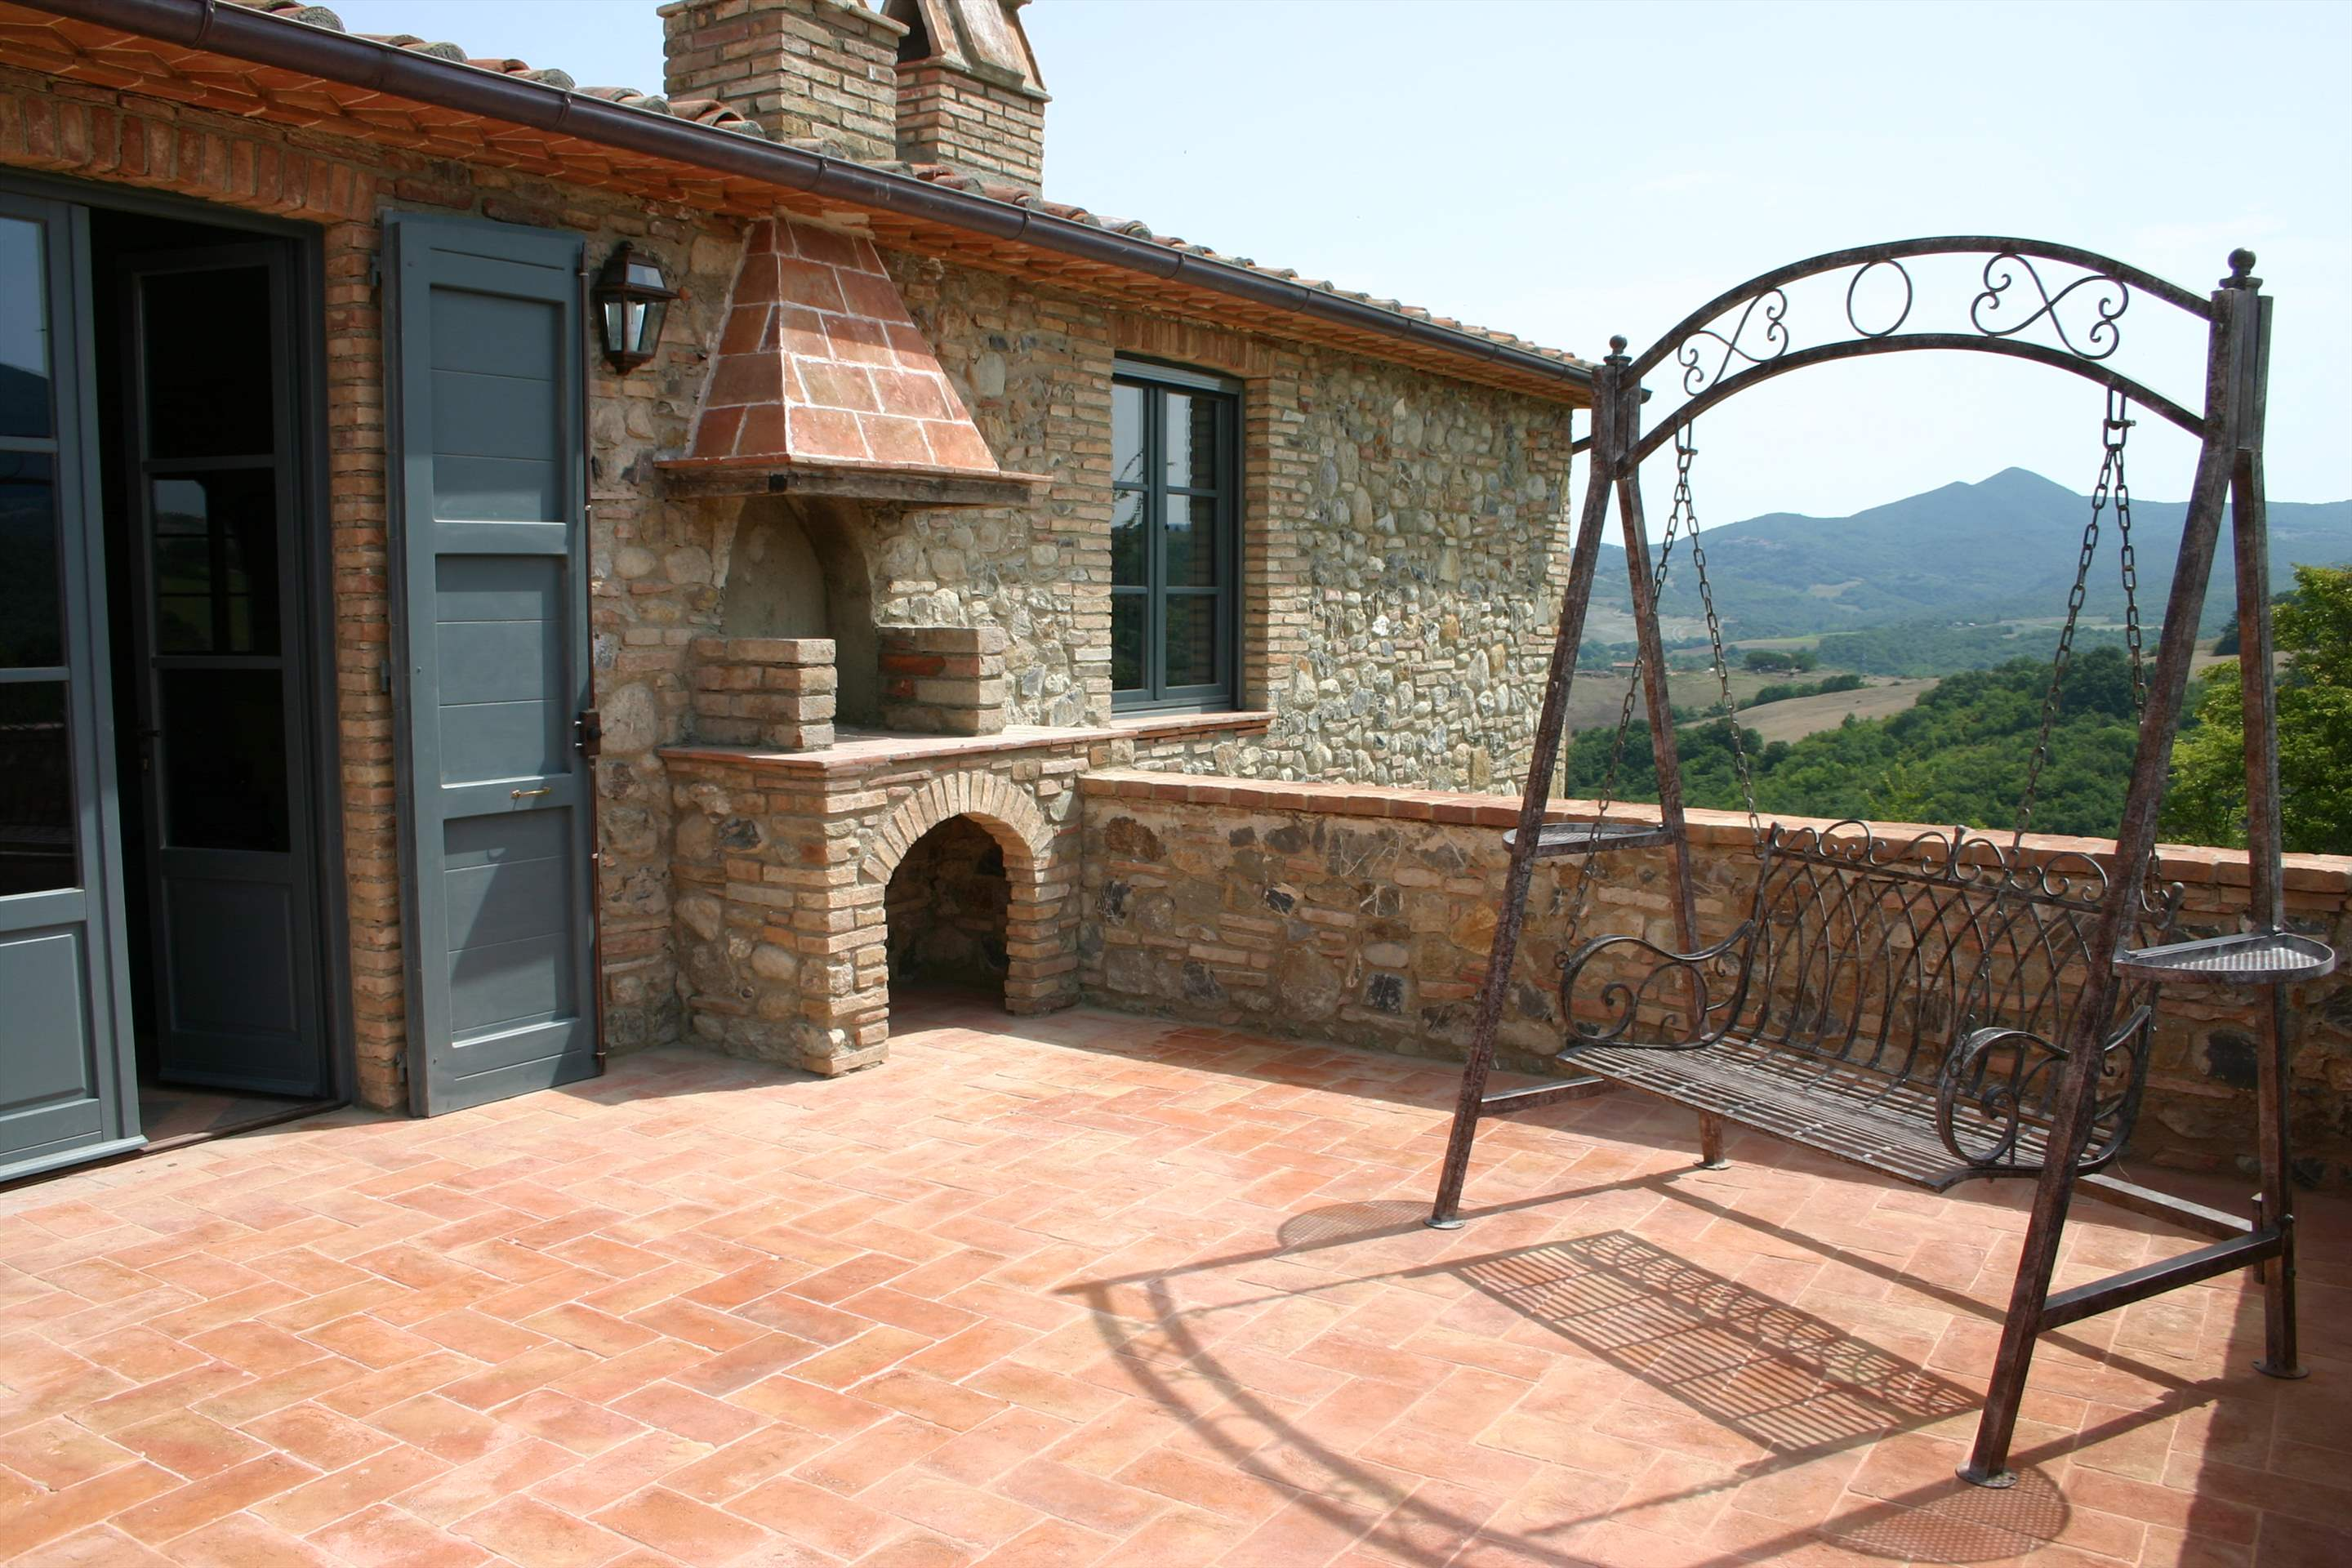 Podere Casacce, Ground Floor, 4 bedroom villa in Tuscany Coast, Tuscany Photo #17